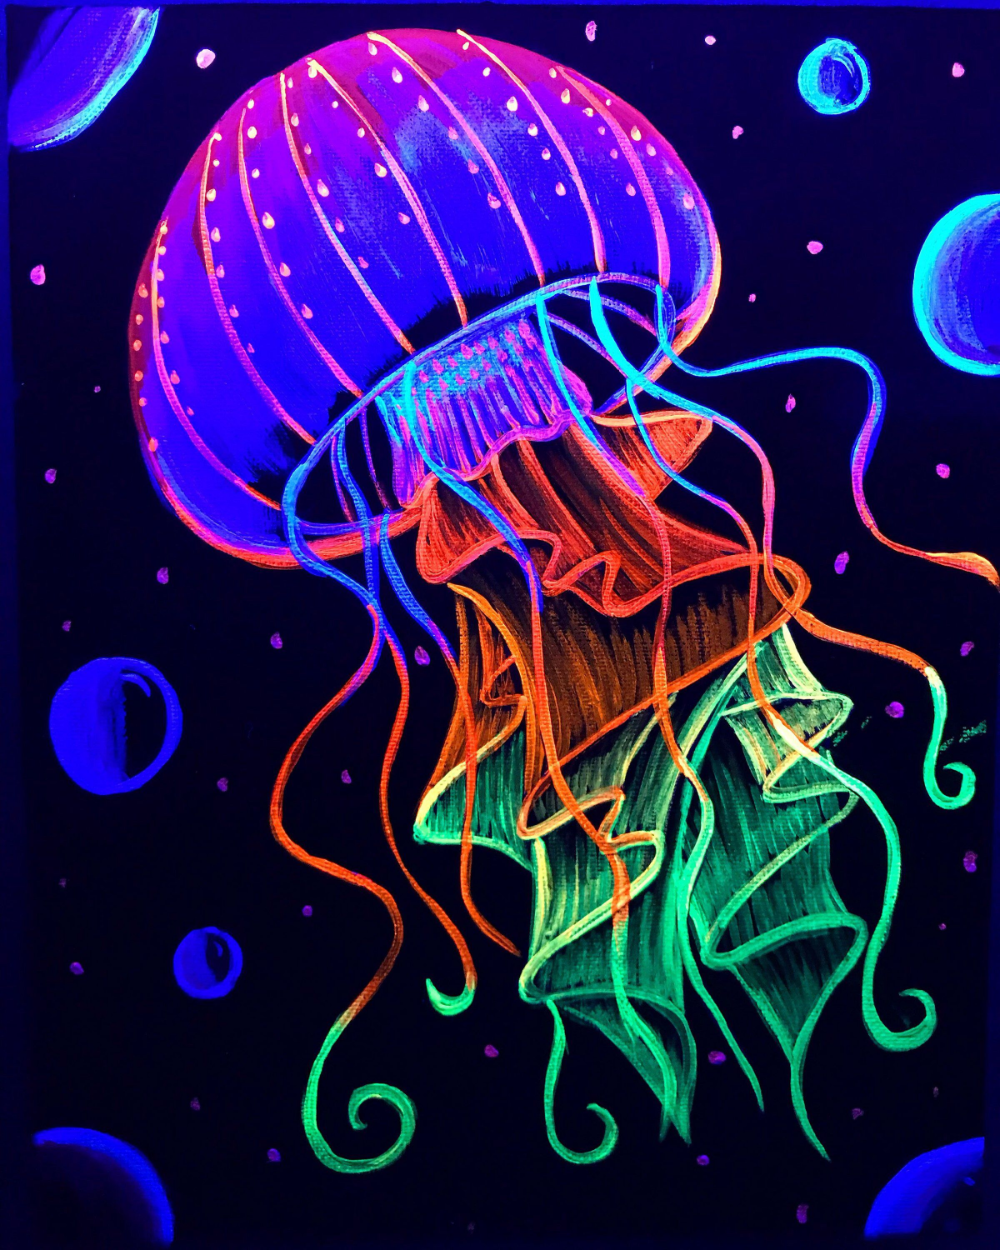 Neon Paint Miniatures Google Search Jellyfish Painting Glowing Art Neon Painting